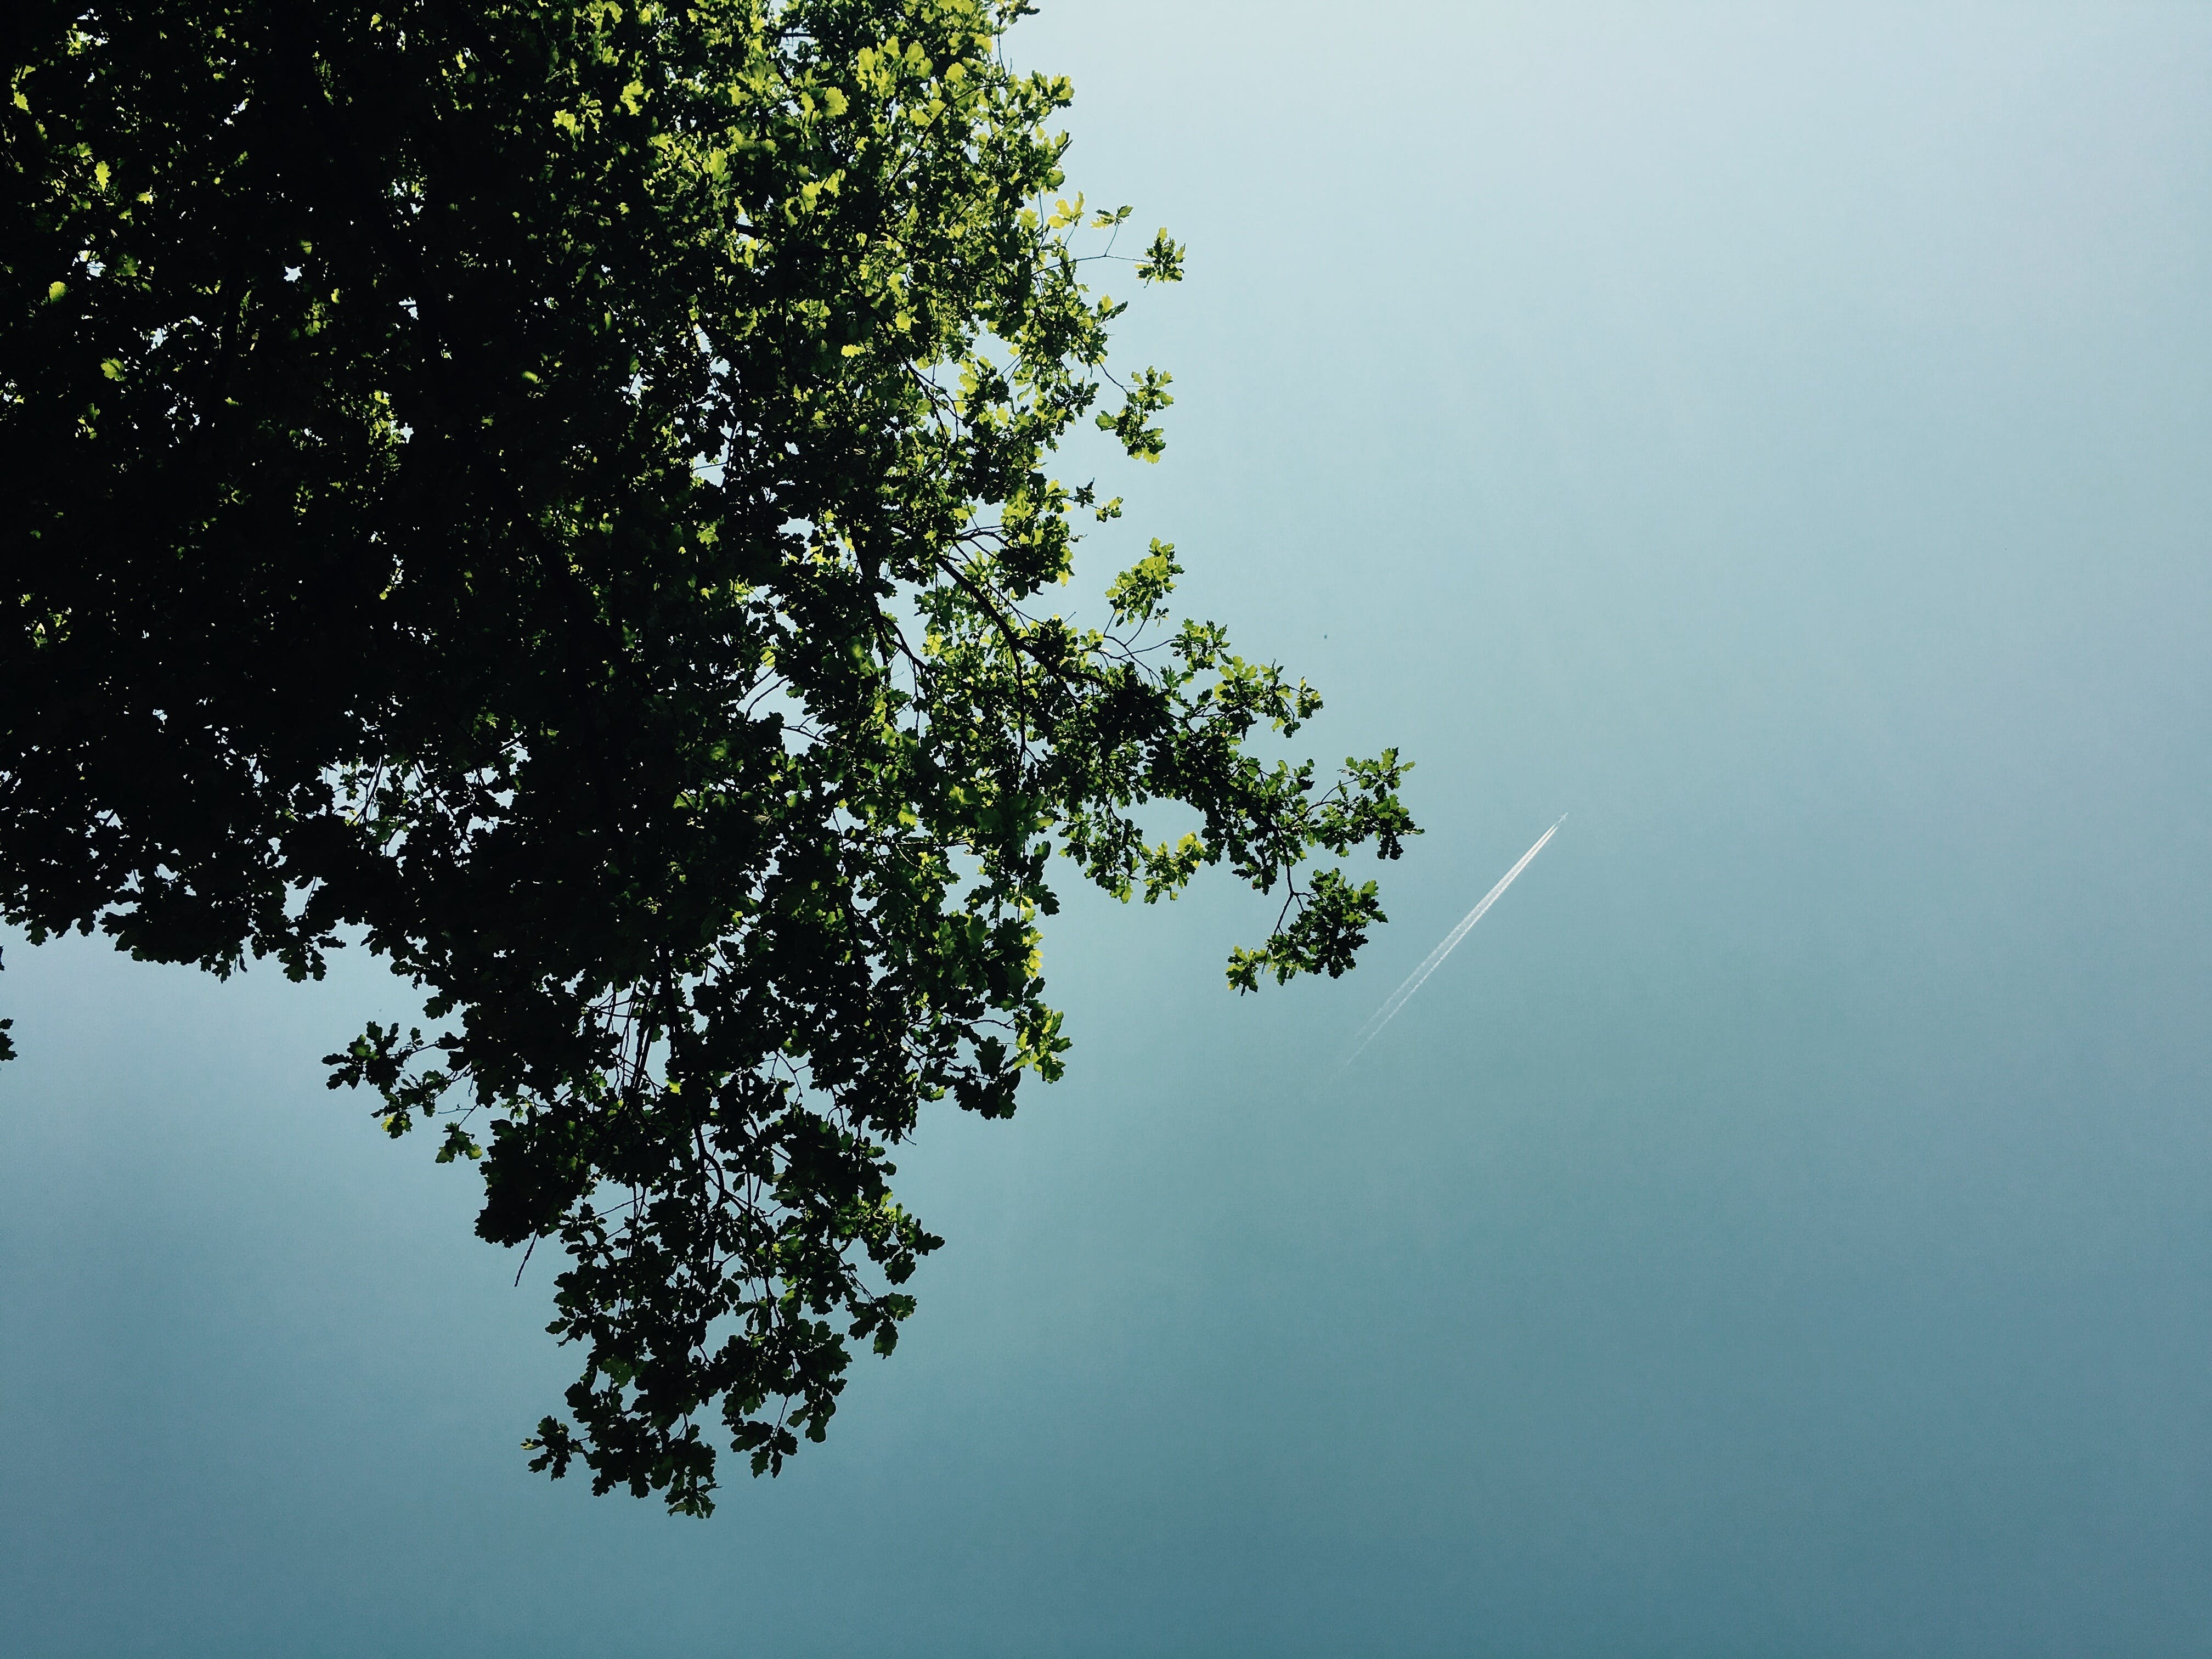 Green Leaf Tree on Low Angle Photography during Daytime